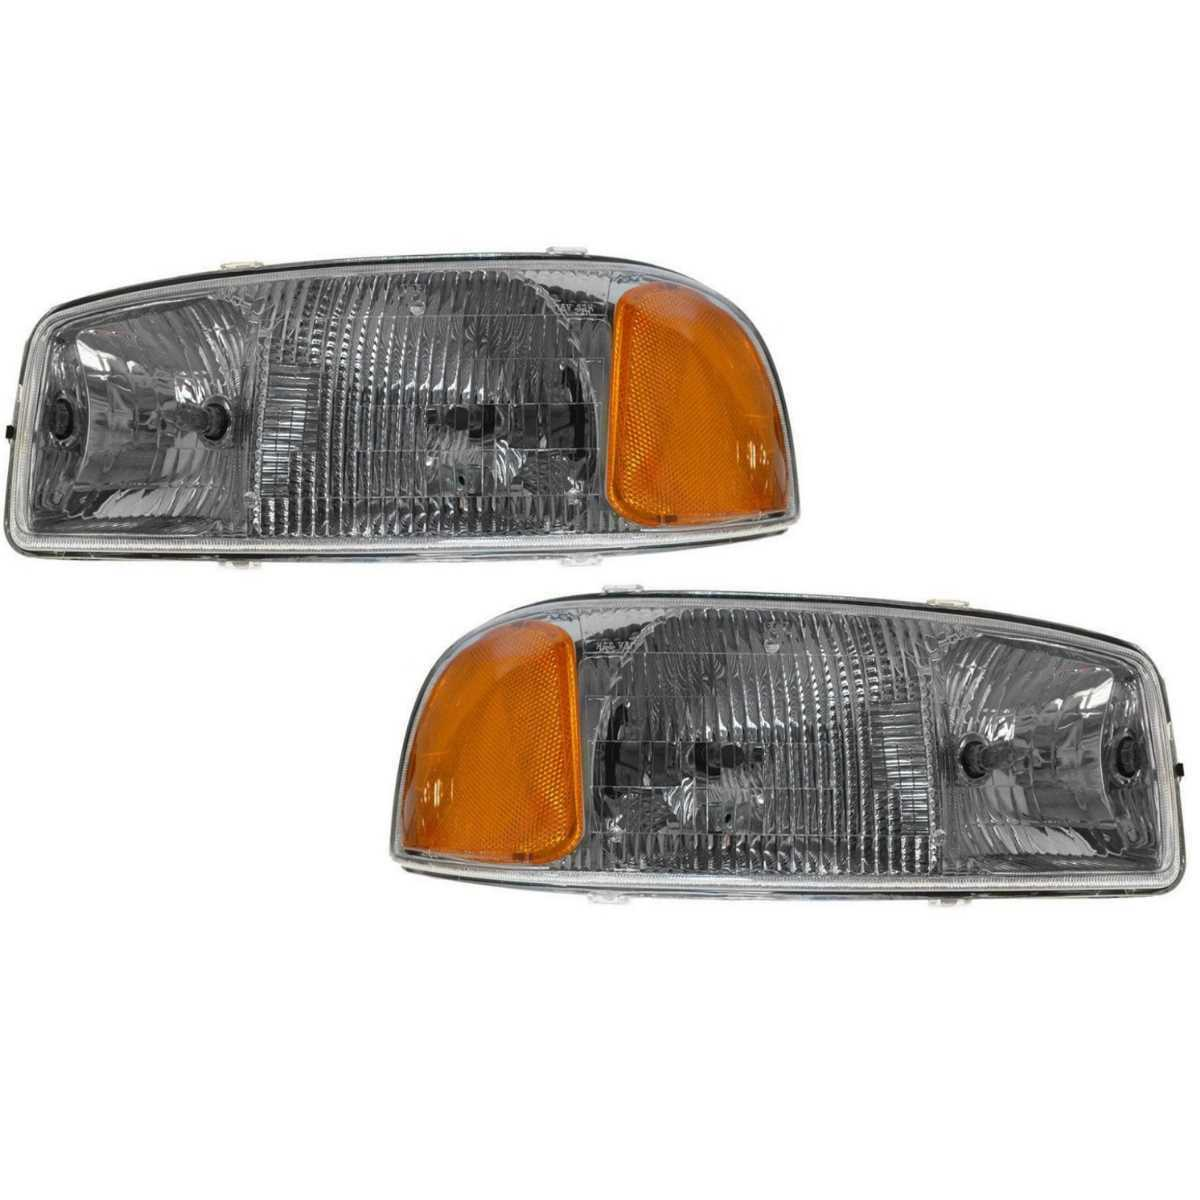 Pair of Front Left and Right Headlight Assemblies fits GMC Sierra Yukon